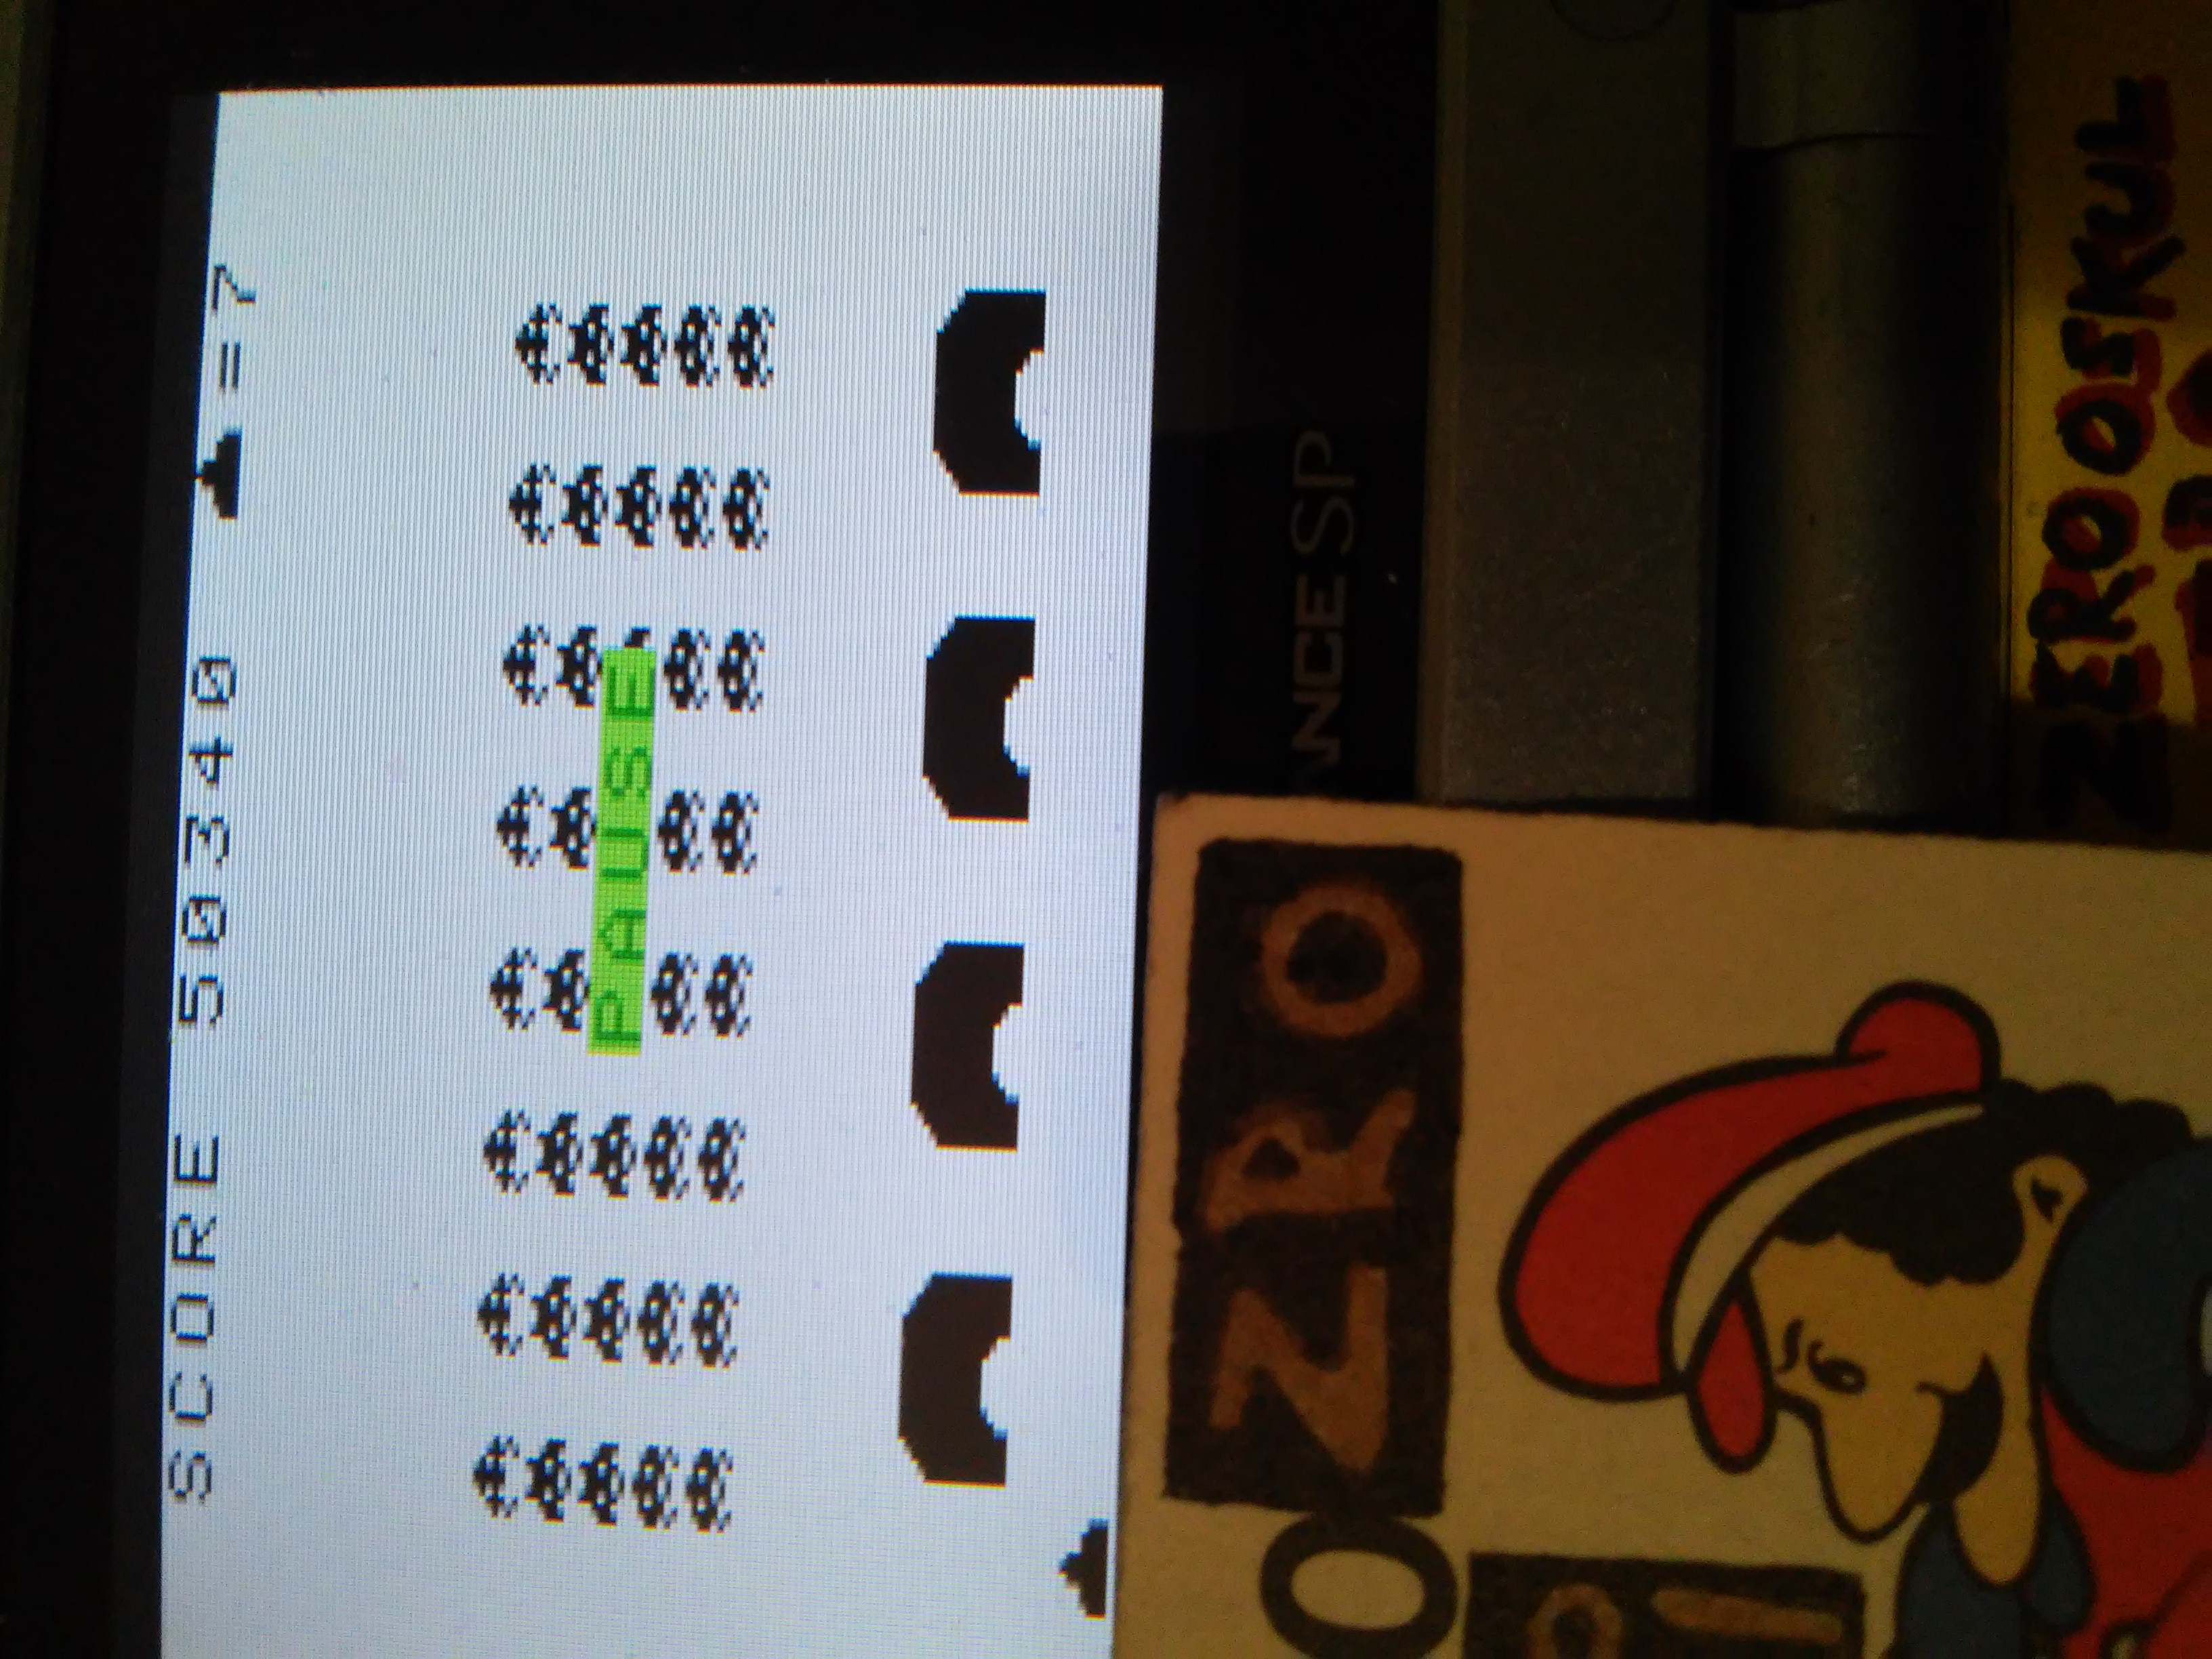 Space Invaders 61,690 points